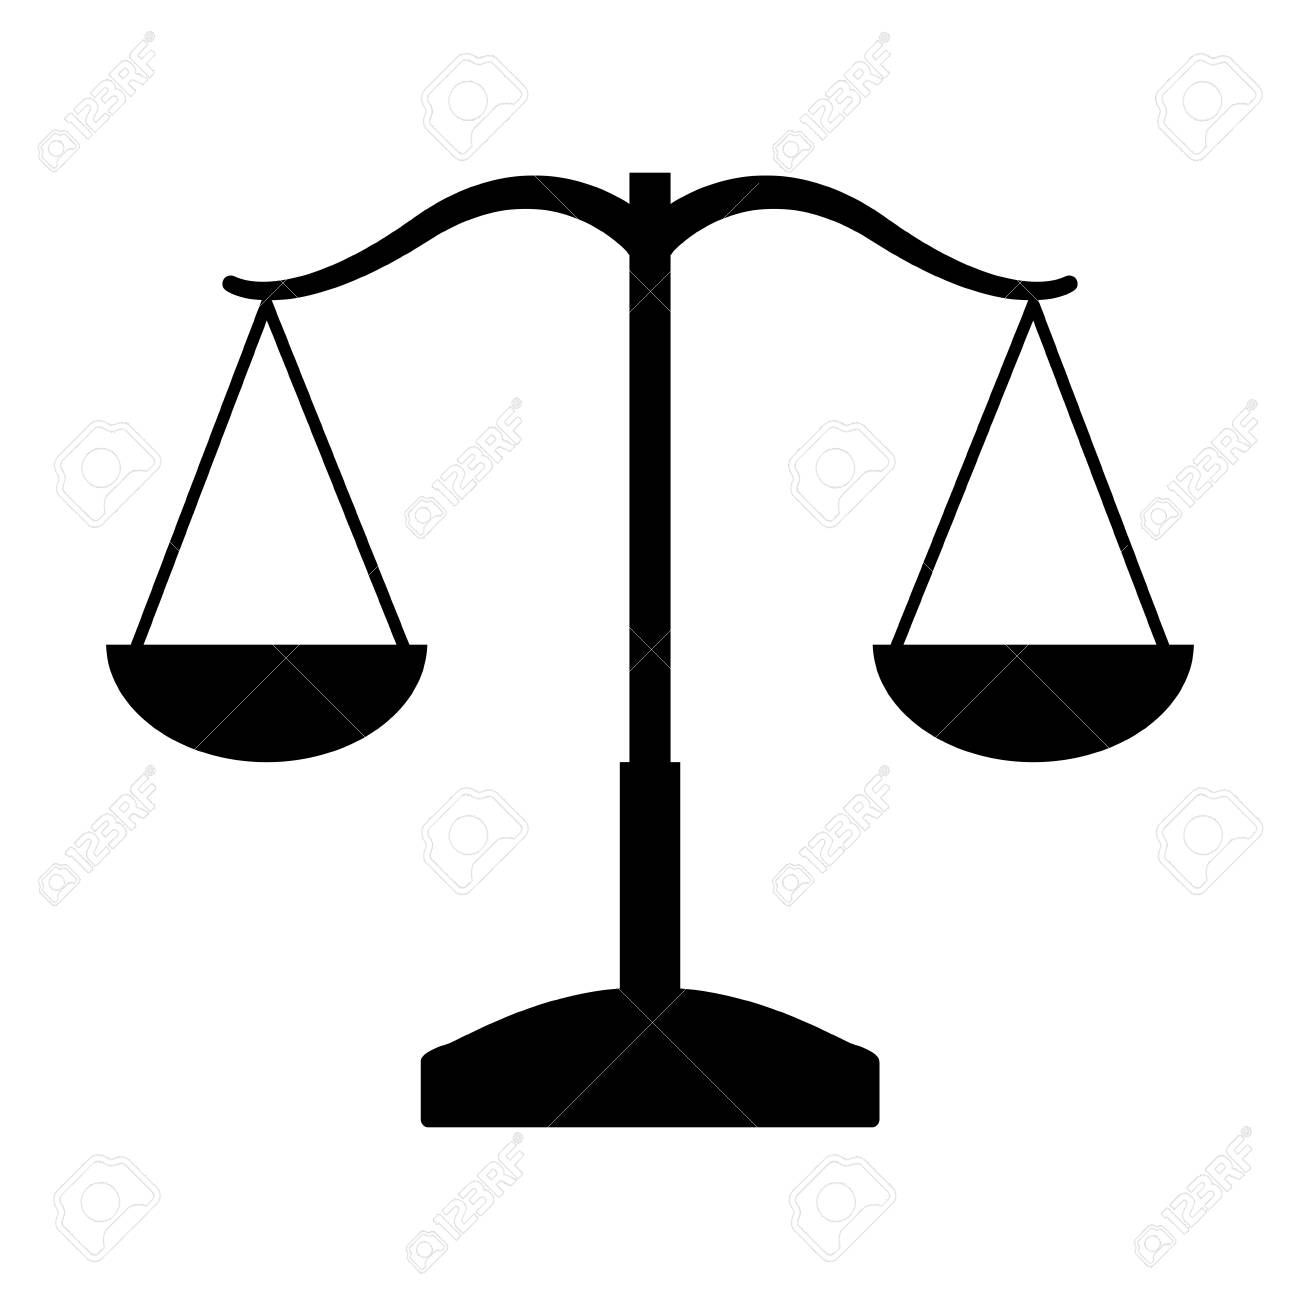 Balance Justice balance justice isolated icon vector illustration design royalty